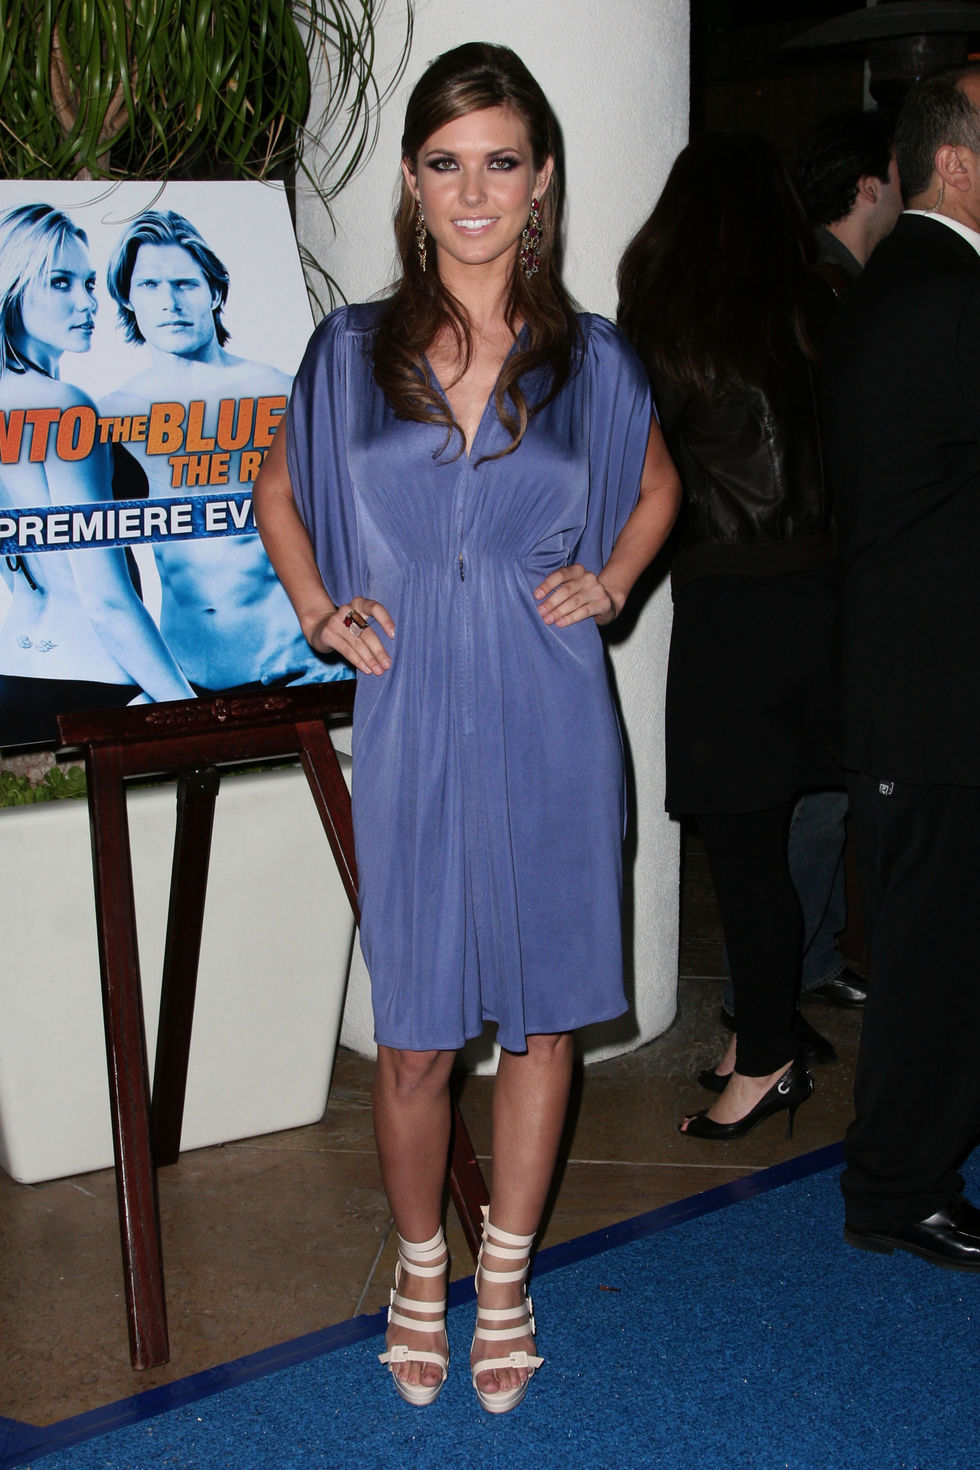 audrina-patridge-into-the-blue-2-the-reef-premiere-in-beverly-hills-04